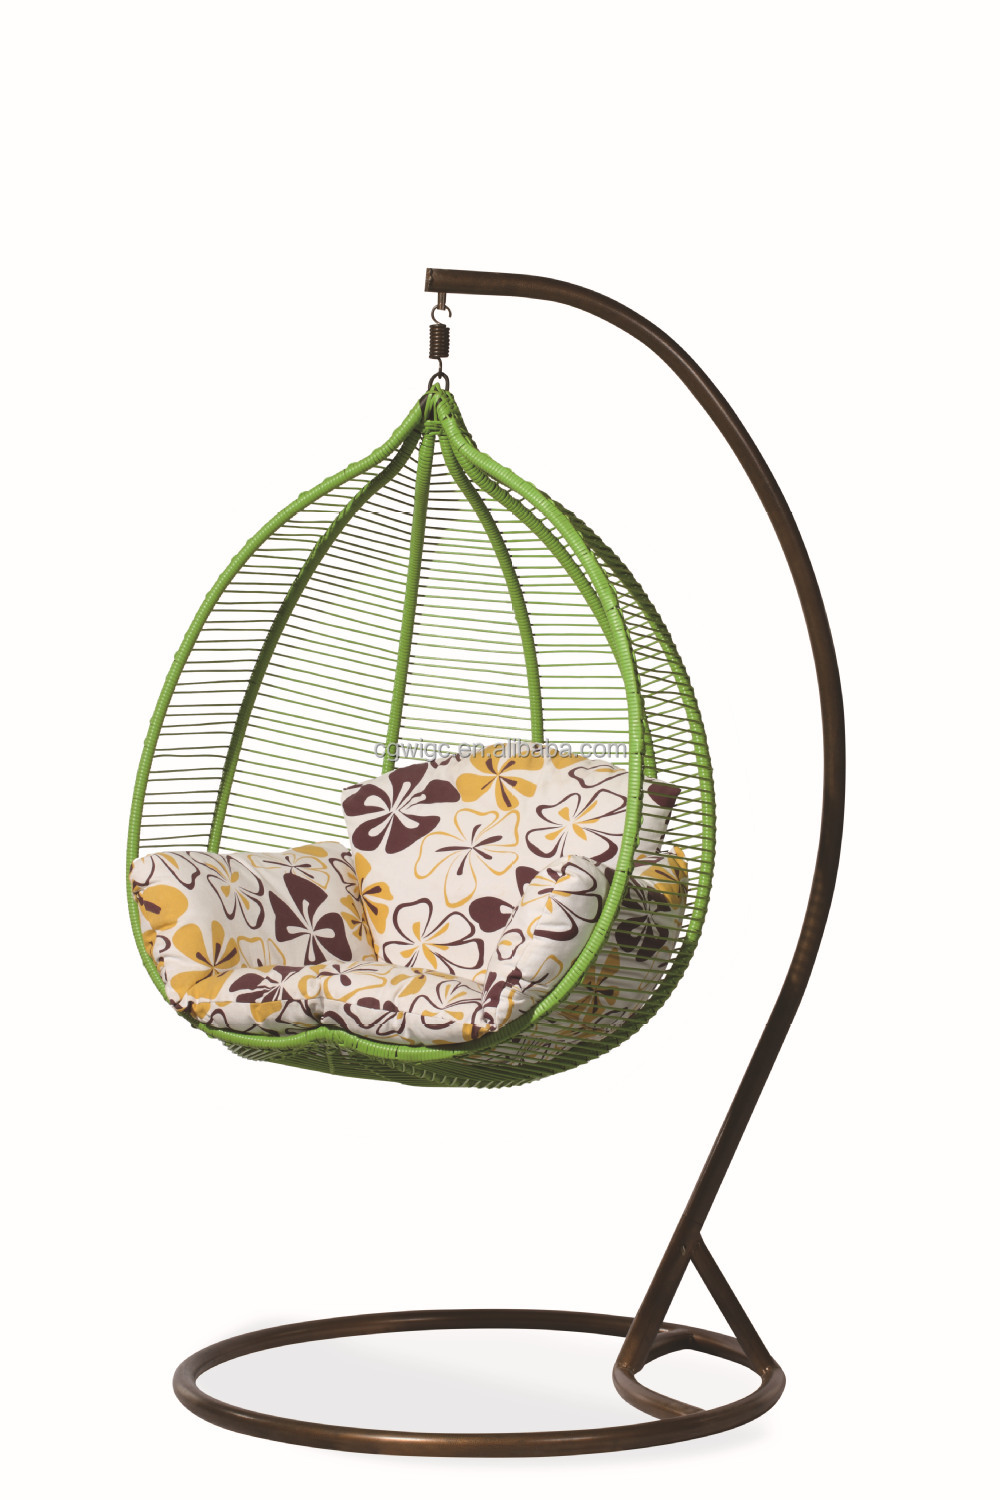 Wicker Hanging Chair. SY F203C